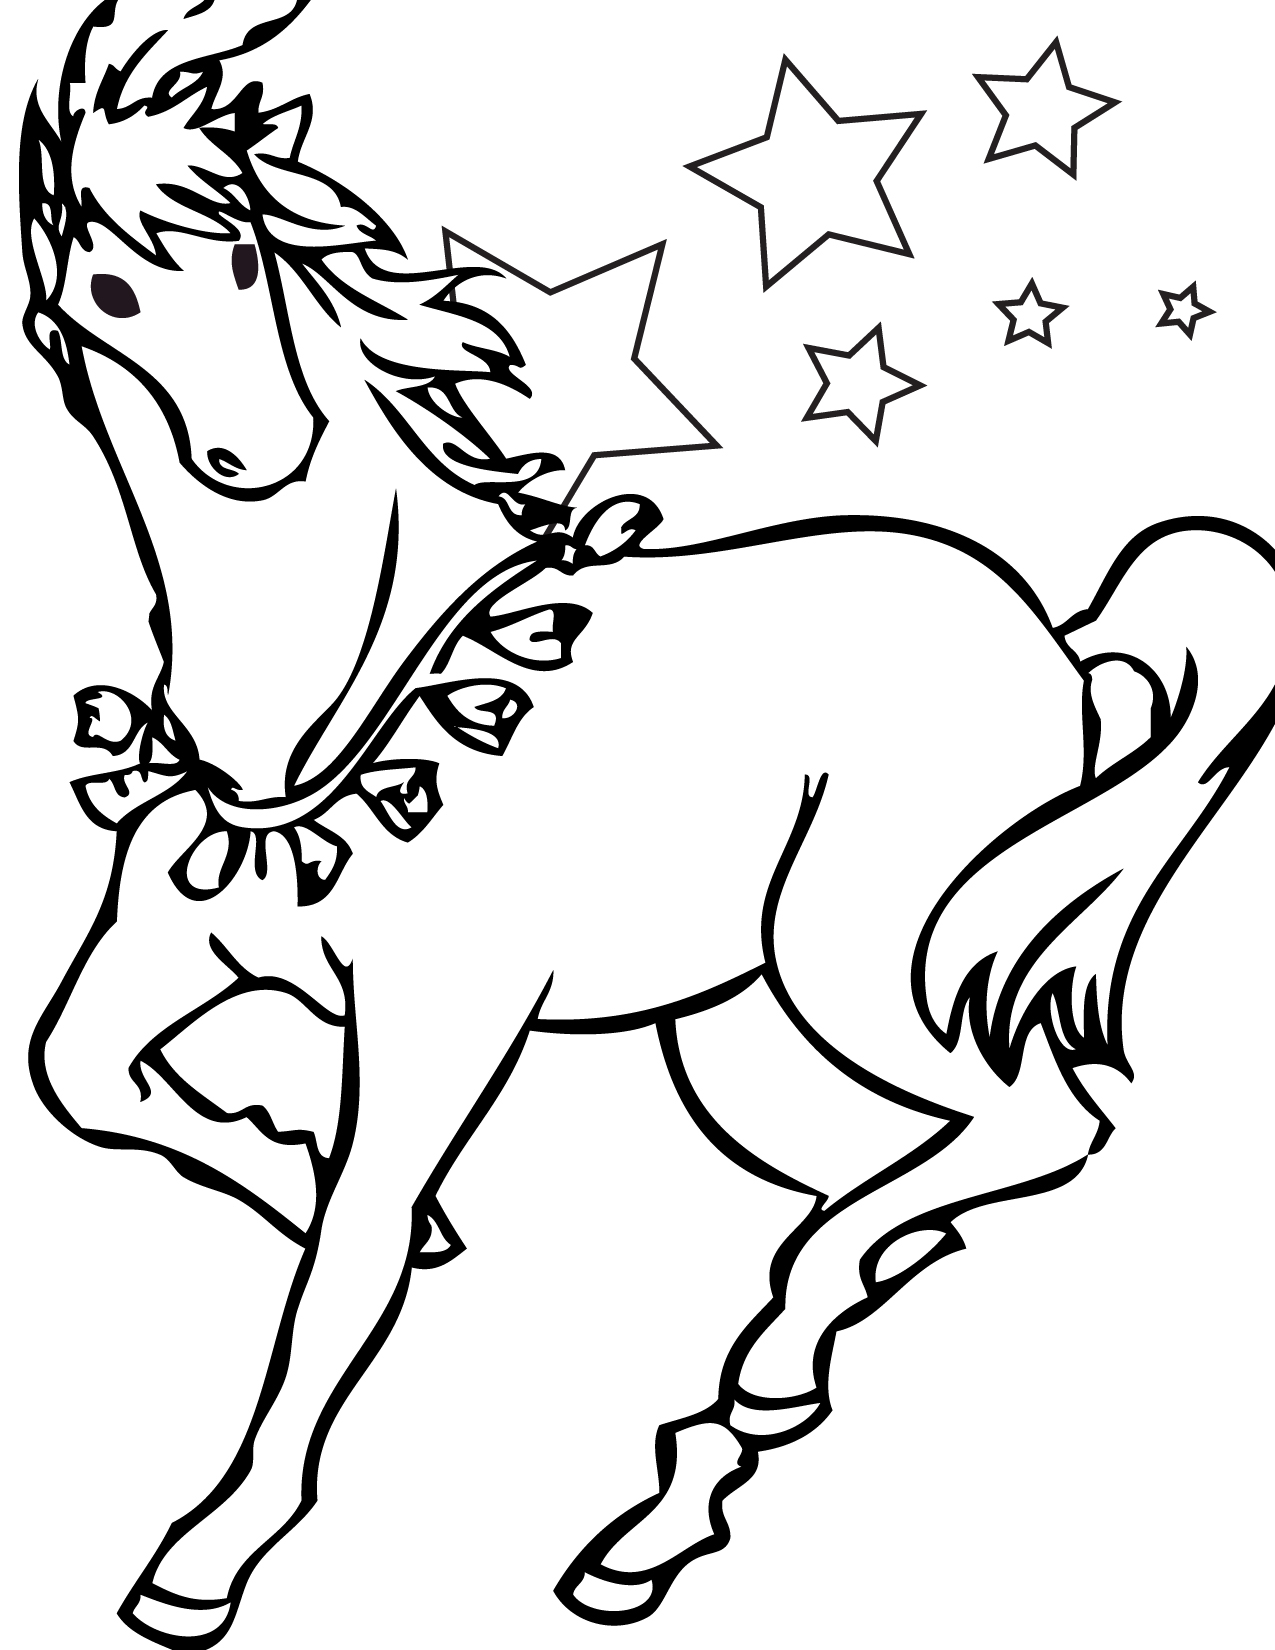 coloring horses printable horse coloring pages for kids coloring pages for kids coloring horses printable